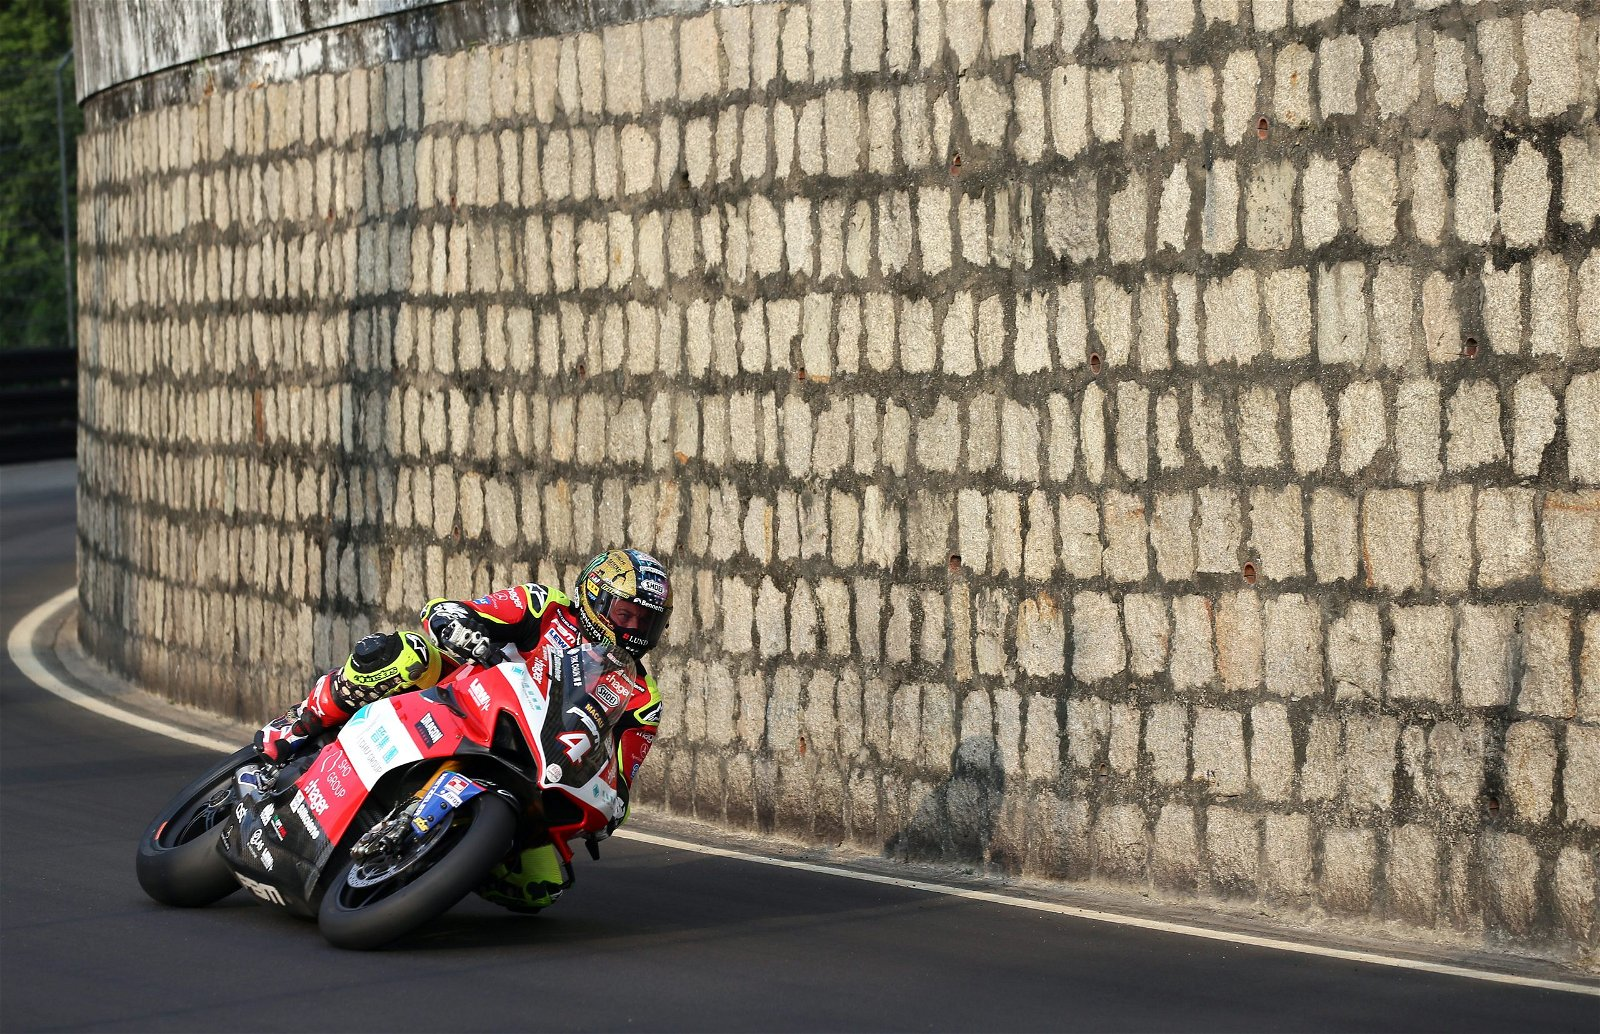 John McGuinness was also part of the Ducati Duo who impressed at Macau GP